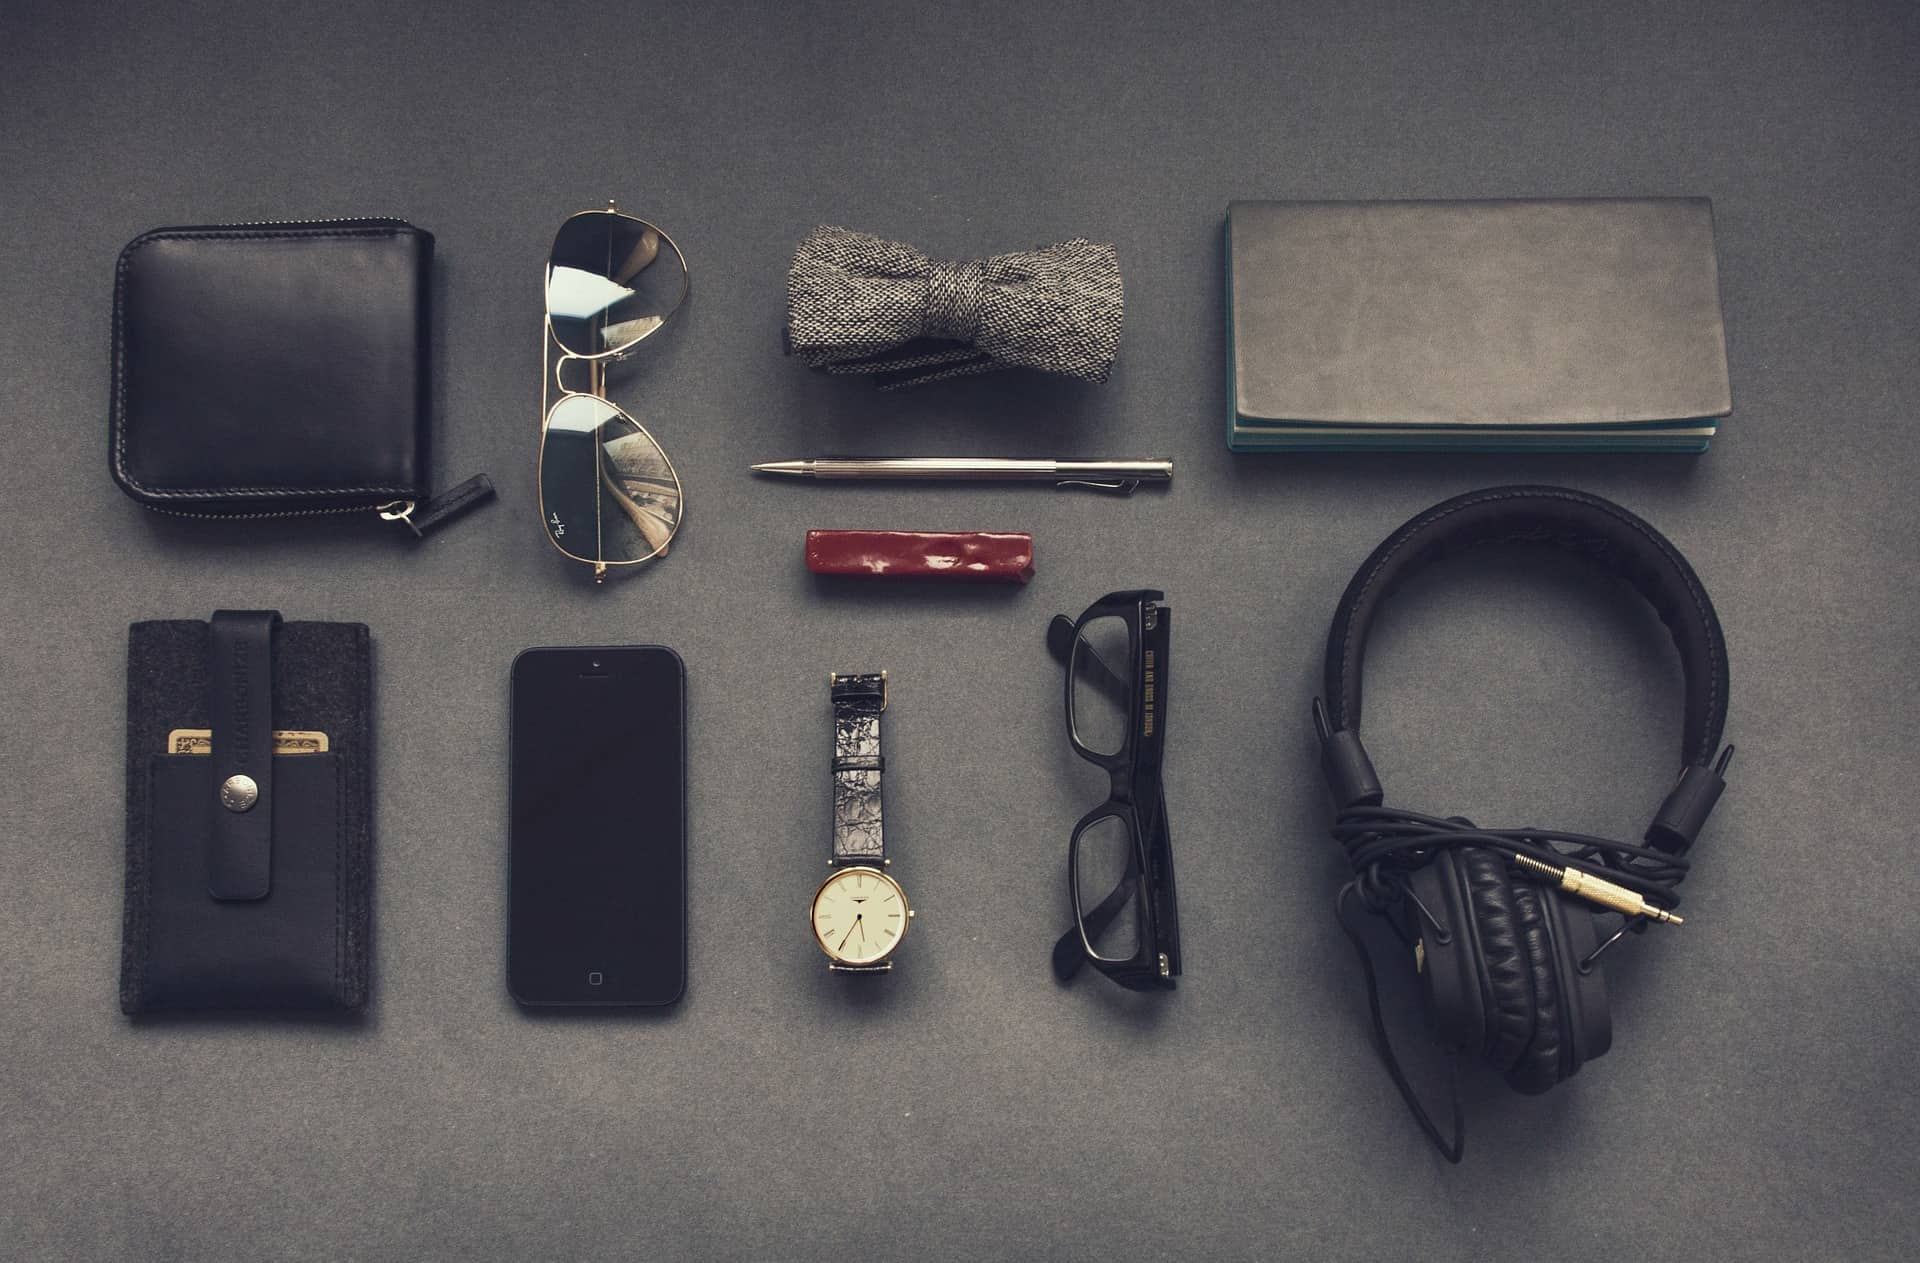 everyday carry gadget items on grey table